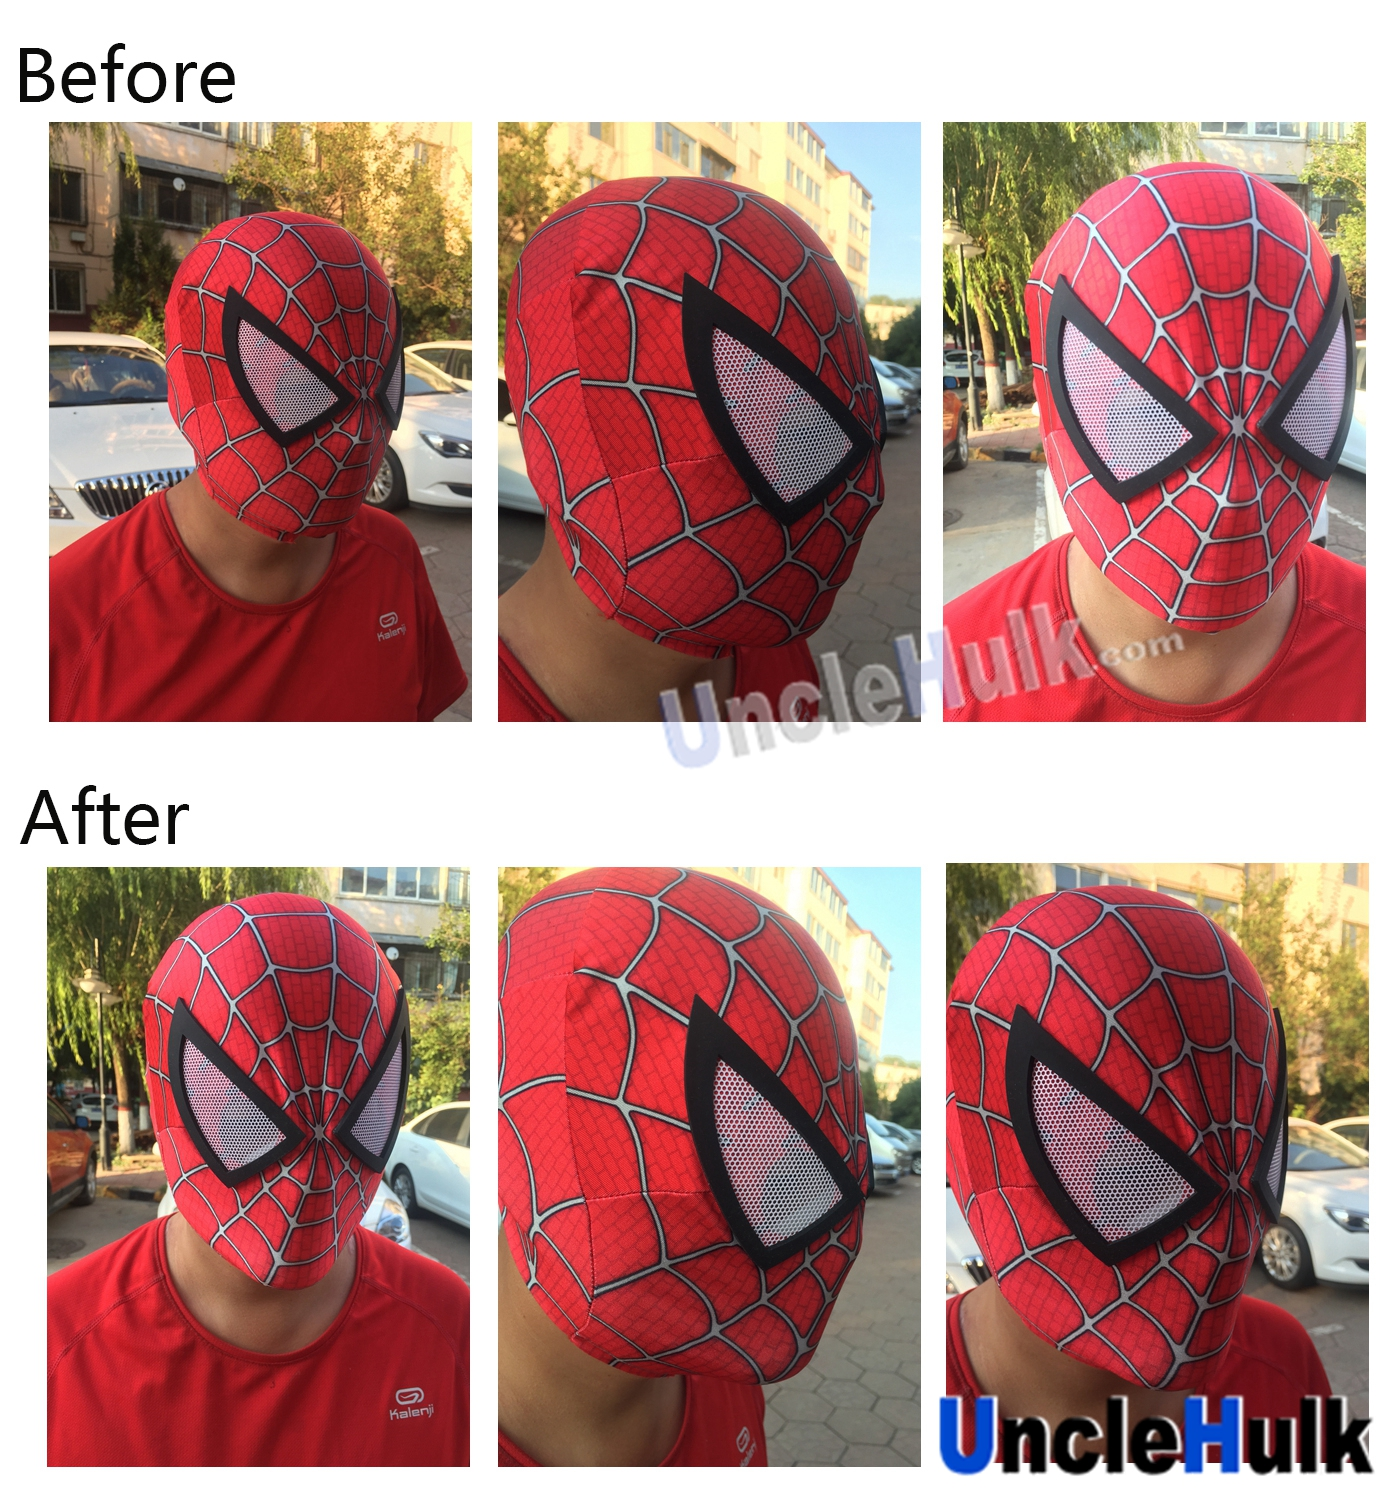 comparison-between-before-and-after-using-rubber-mask